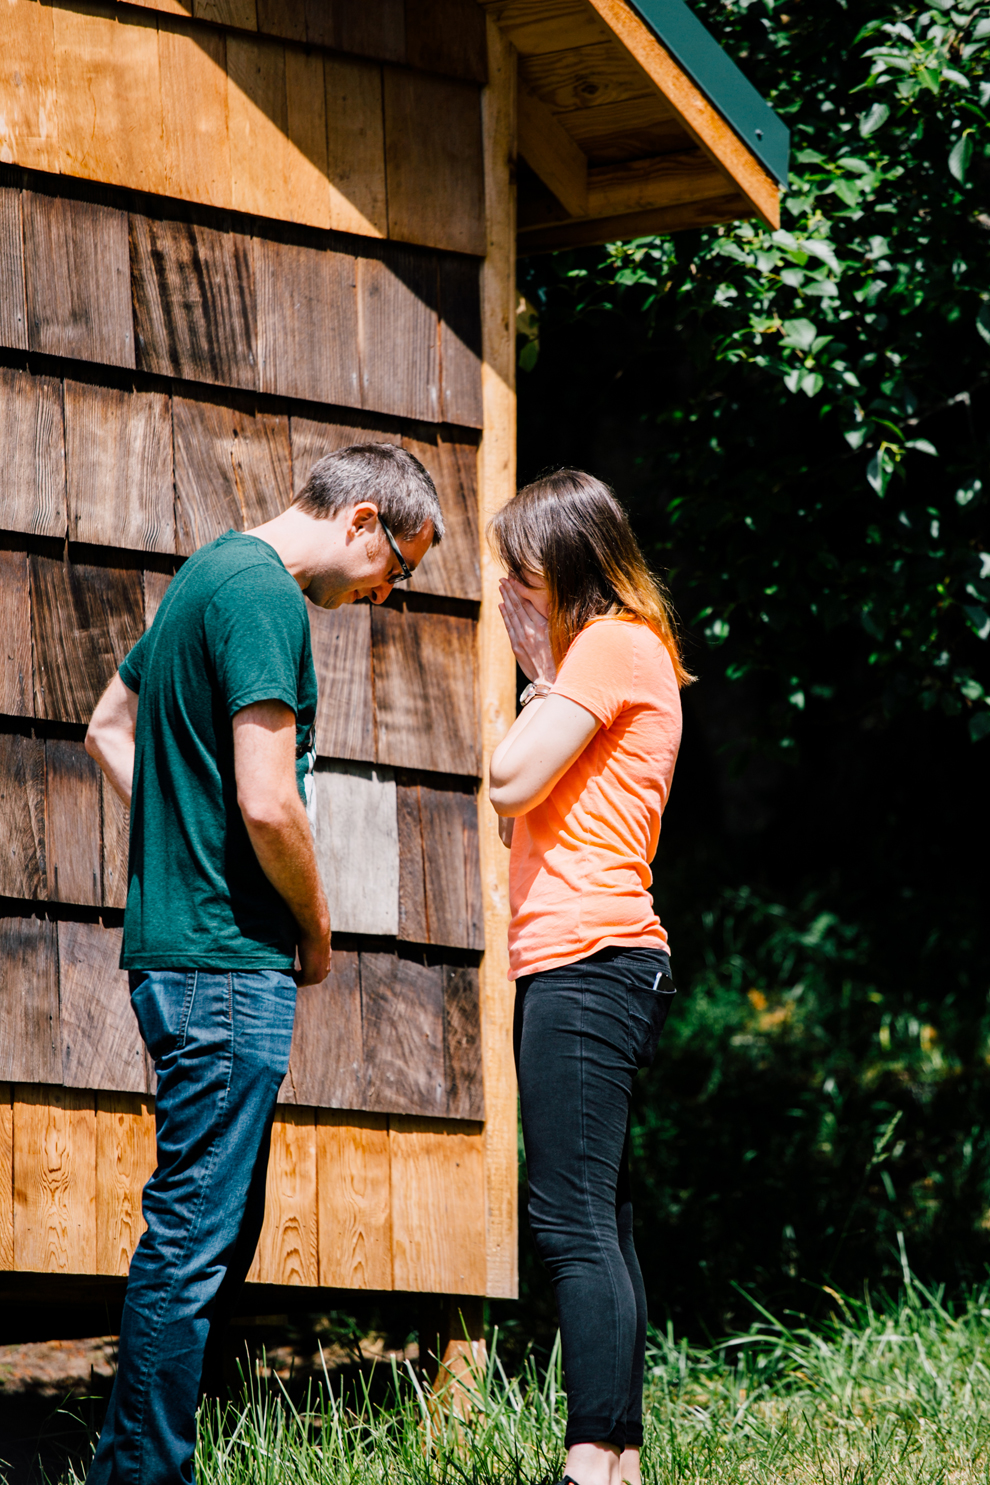 008-orcas-island-engagement-proposal-camp-orkila-katheryn-moran-photography.jpg